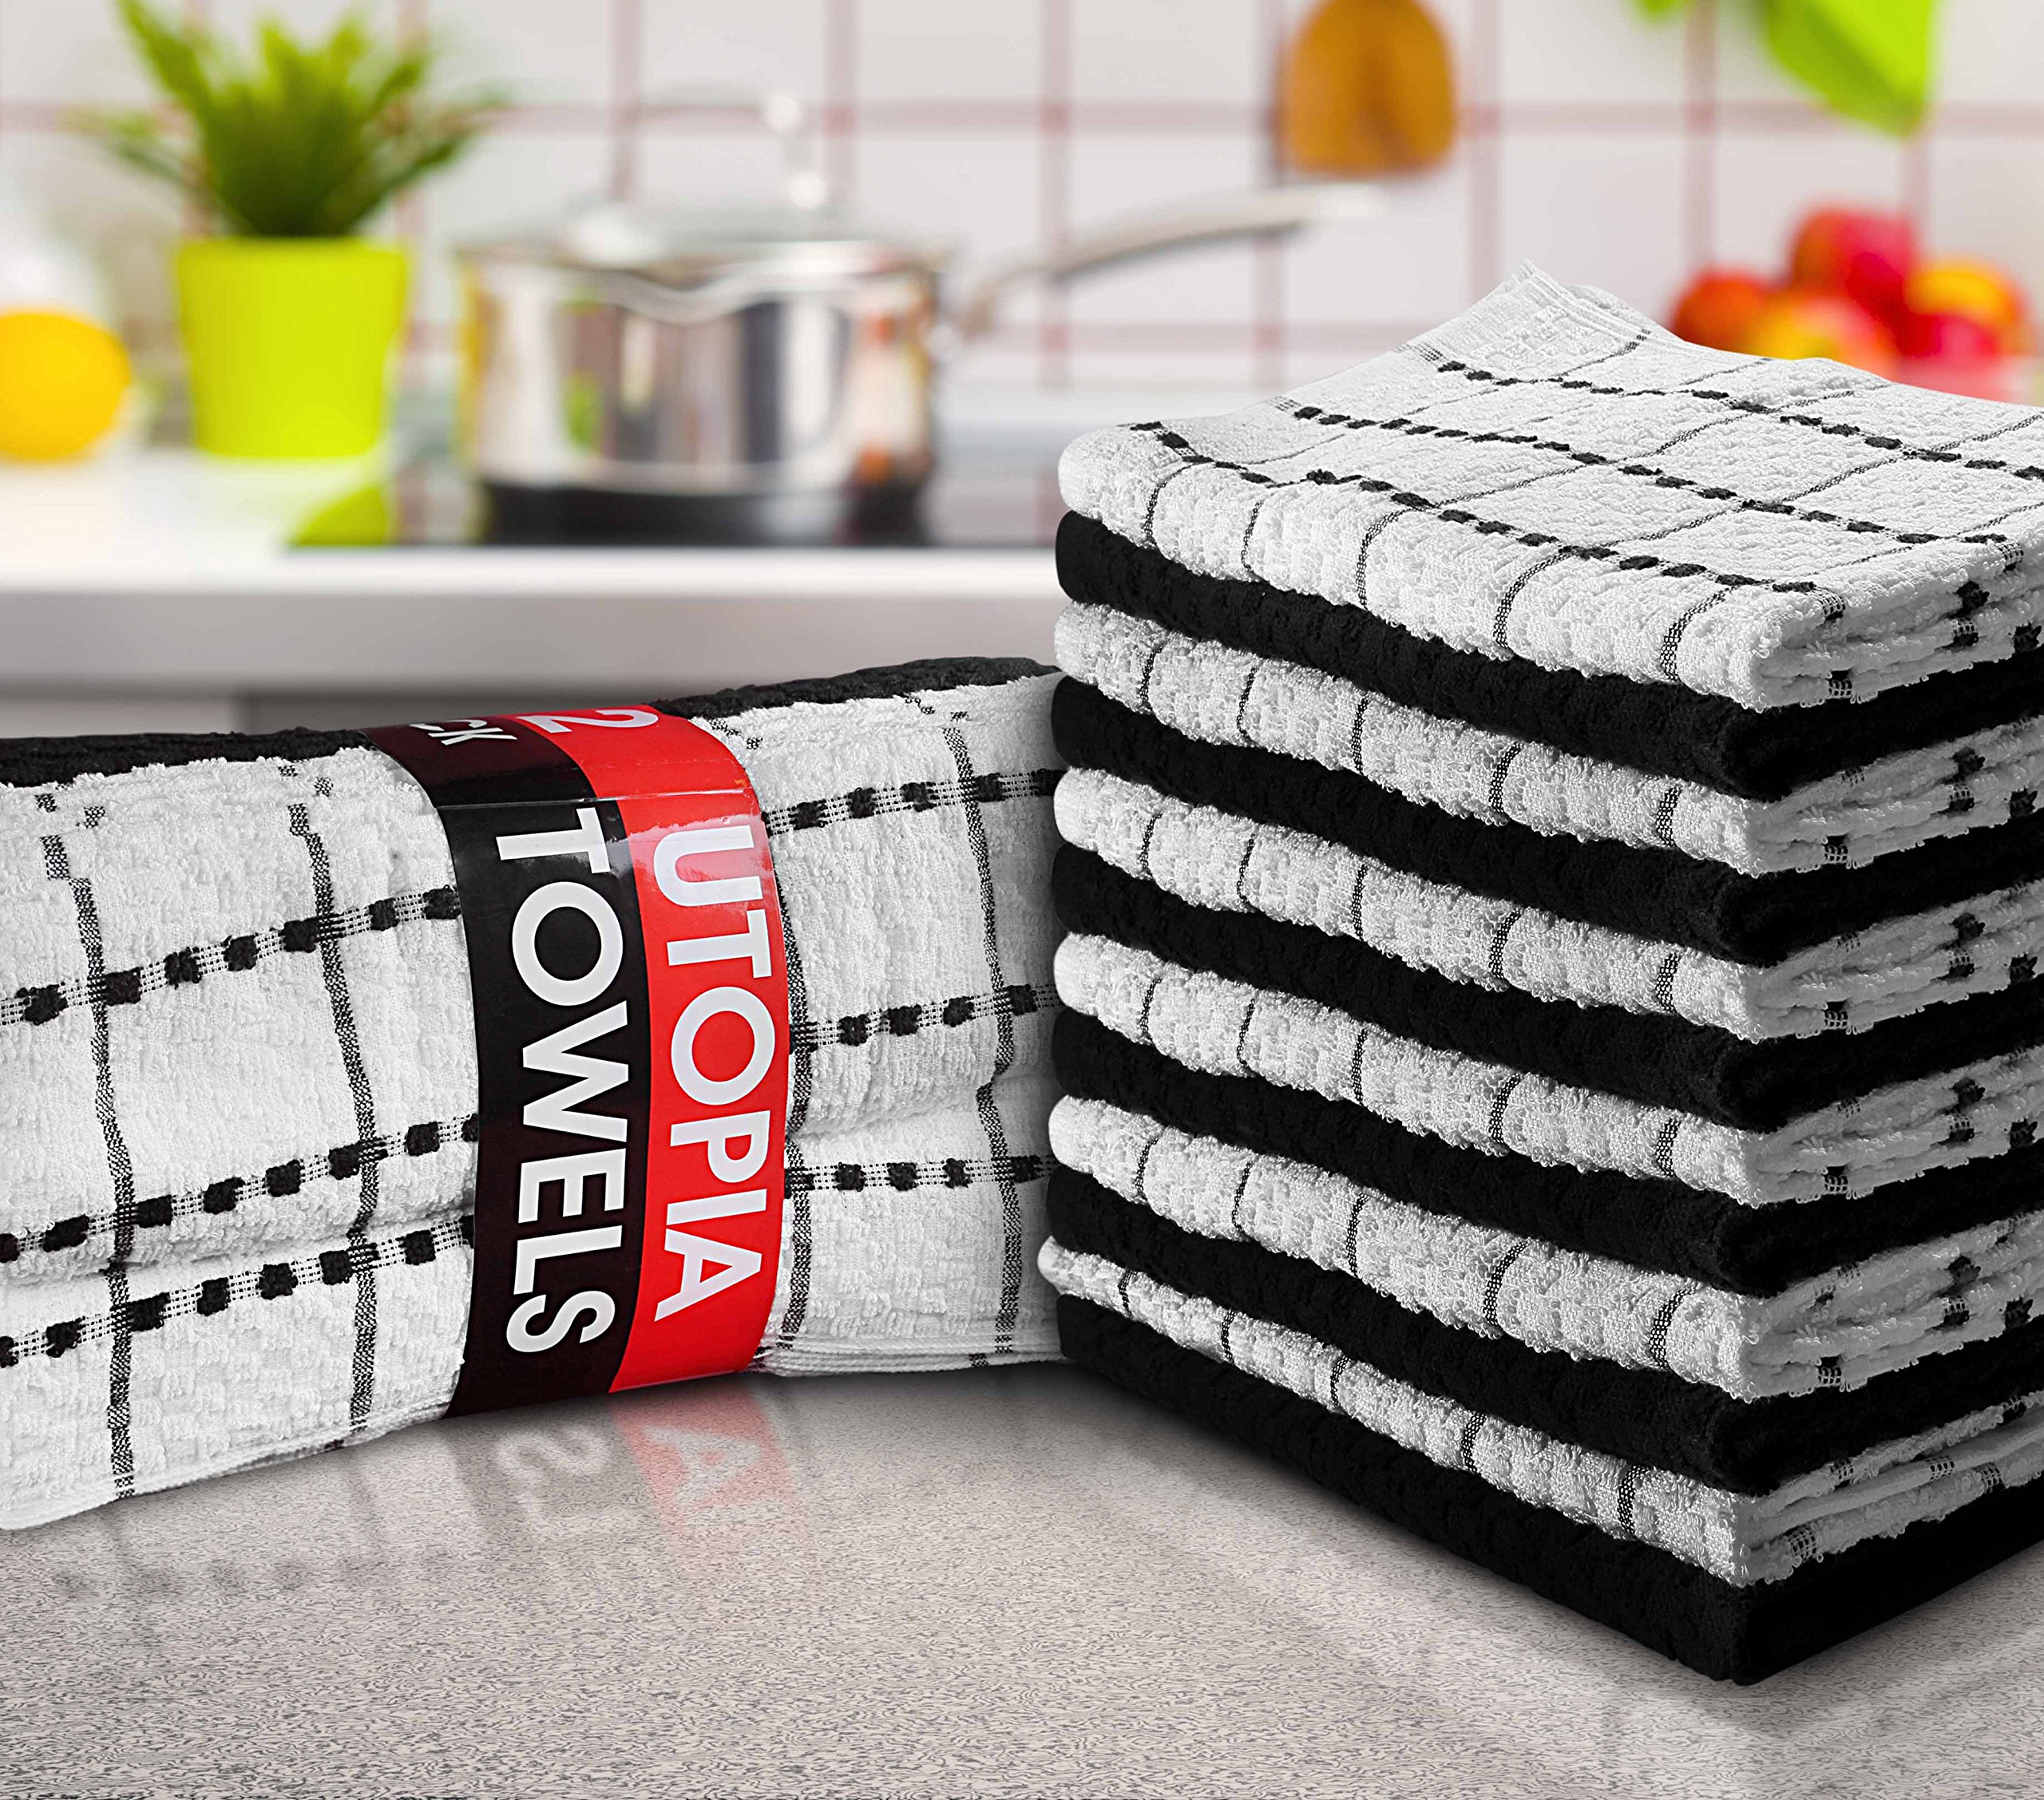 Utopia Towels 12 Pack Kitchen Towels 15 x 25 inch Cotton Dish Towels, Tea Towels and bar Towels by Utopia Towels (Image #2)